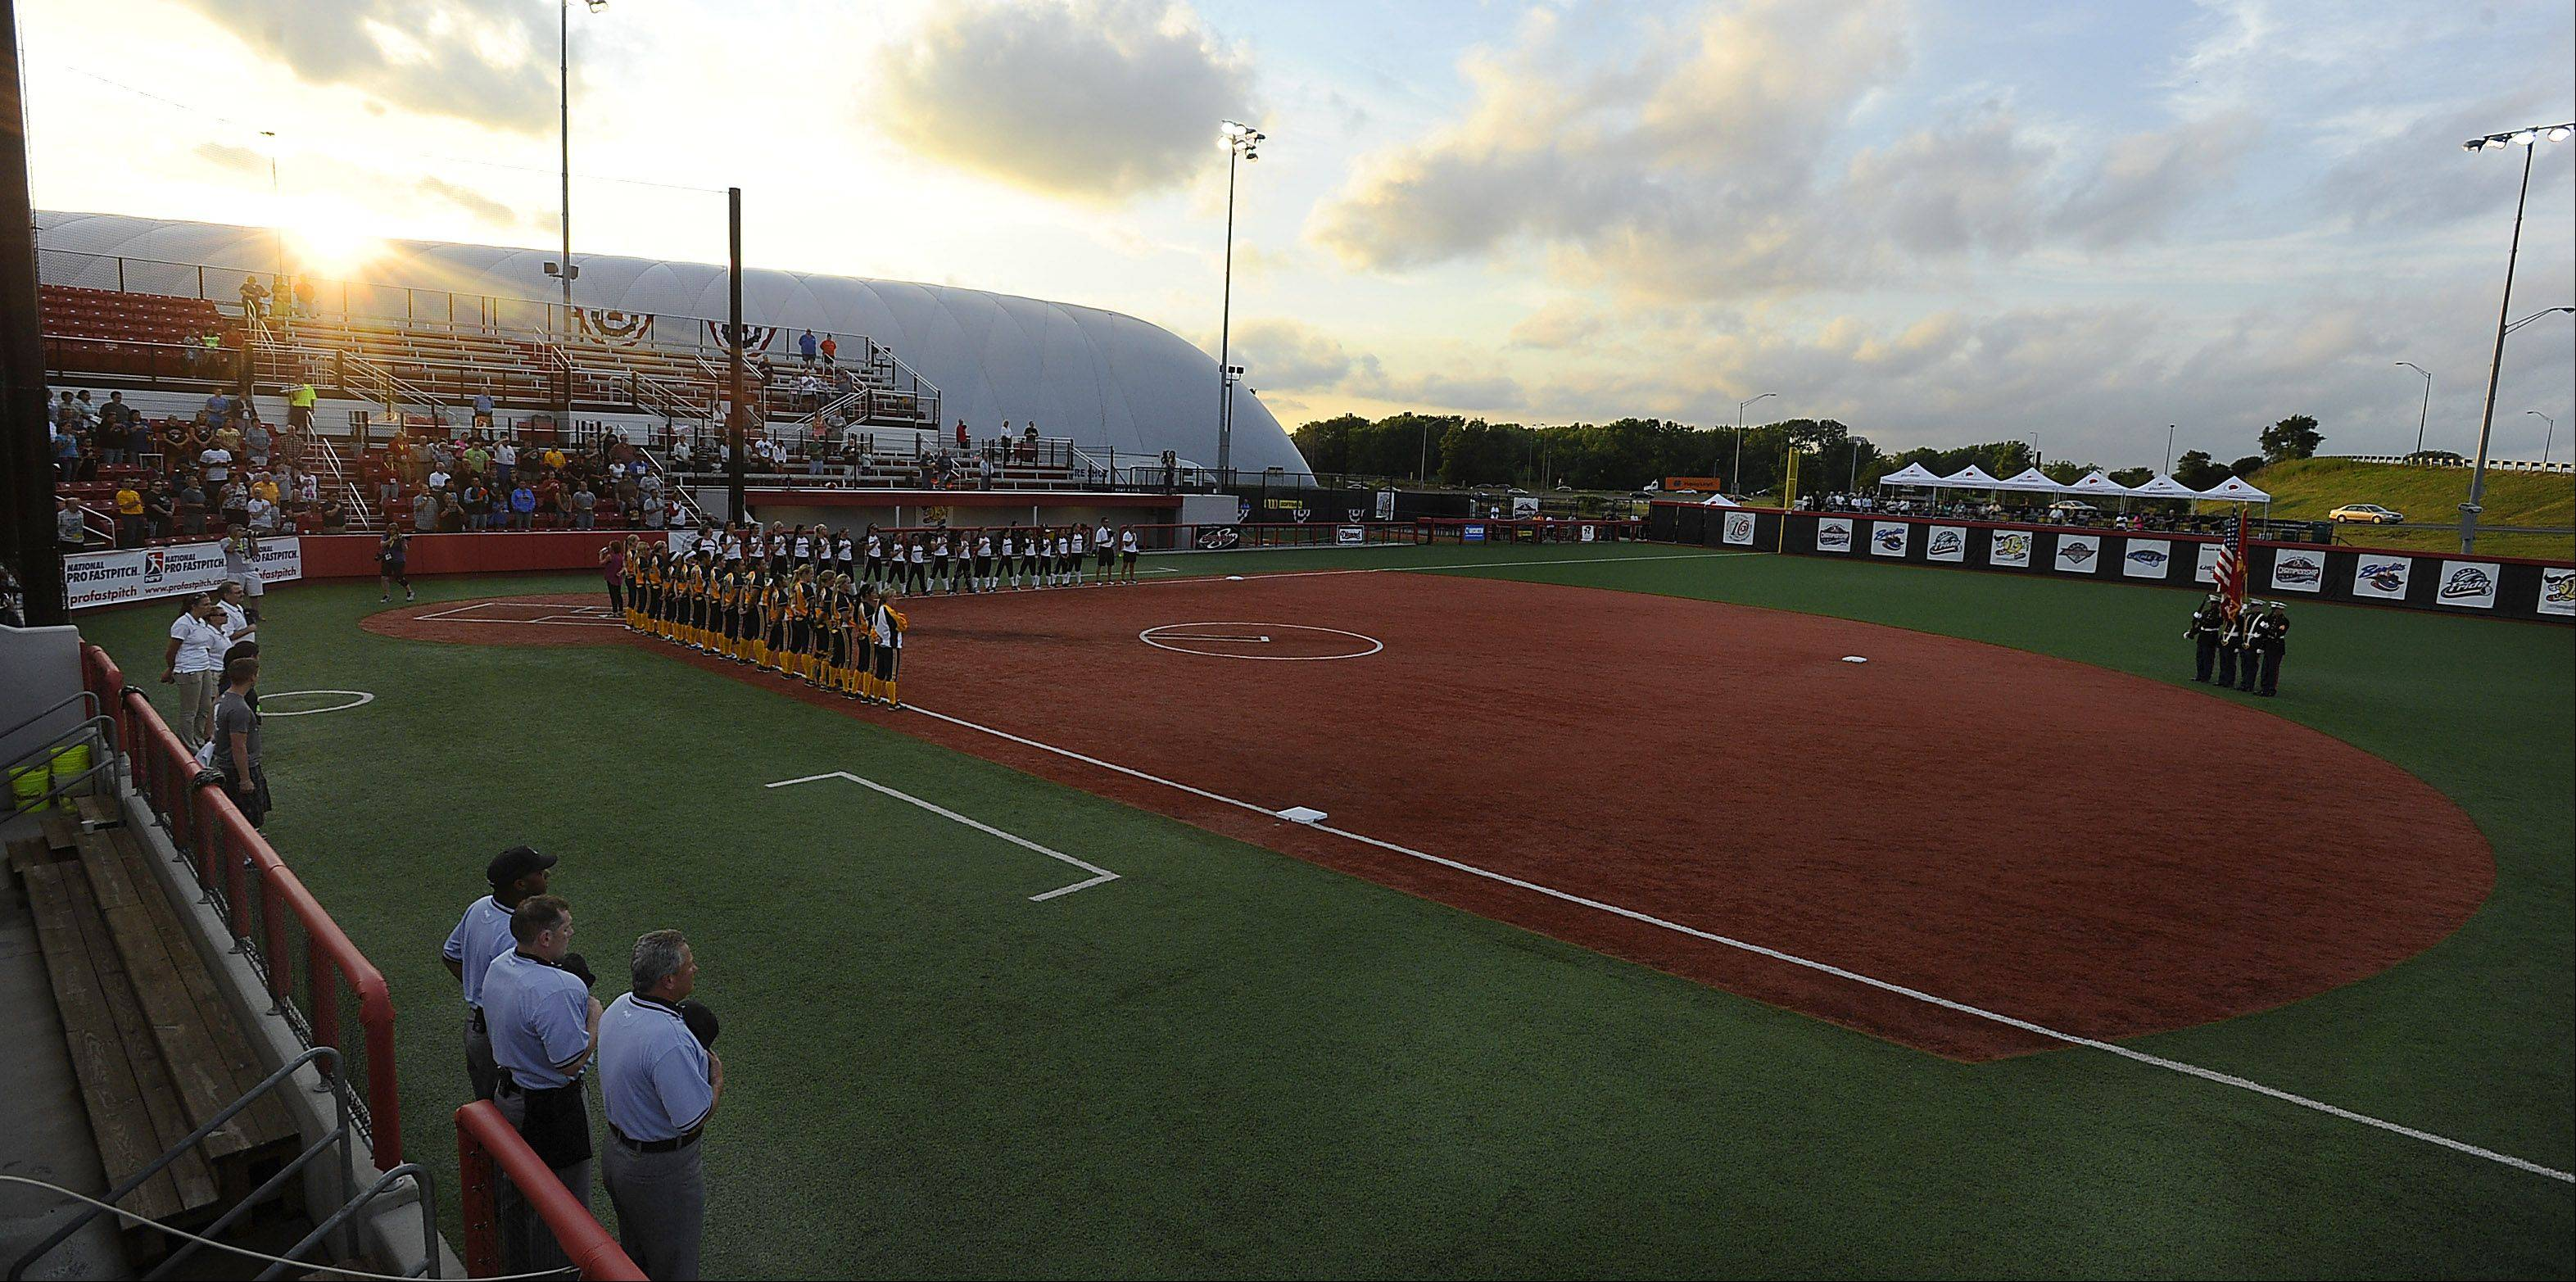 The Akron Racers and the New York/New Jersey Comets opened the championship series on Thursday at the National Pro Fastpitch 2013 Championships in Rosemont. The Chicago Bandits will begin play at 5:30 p.m. today.